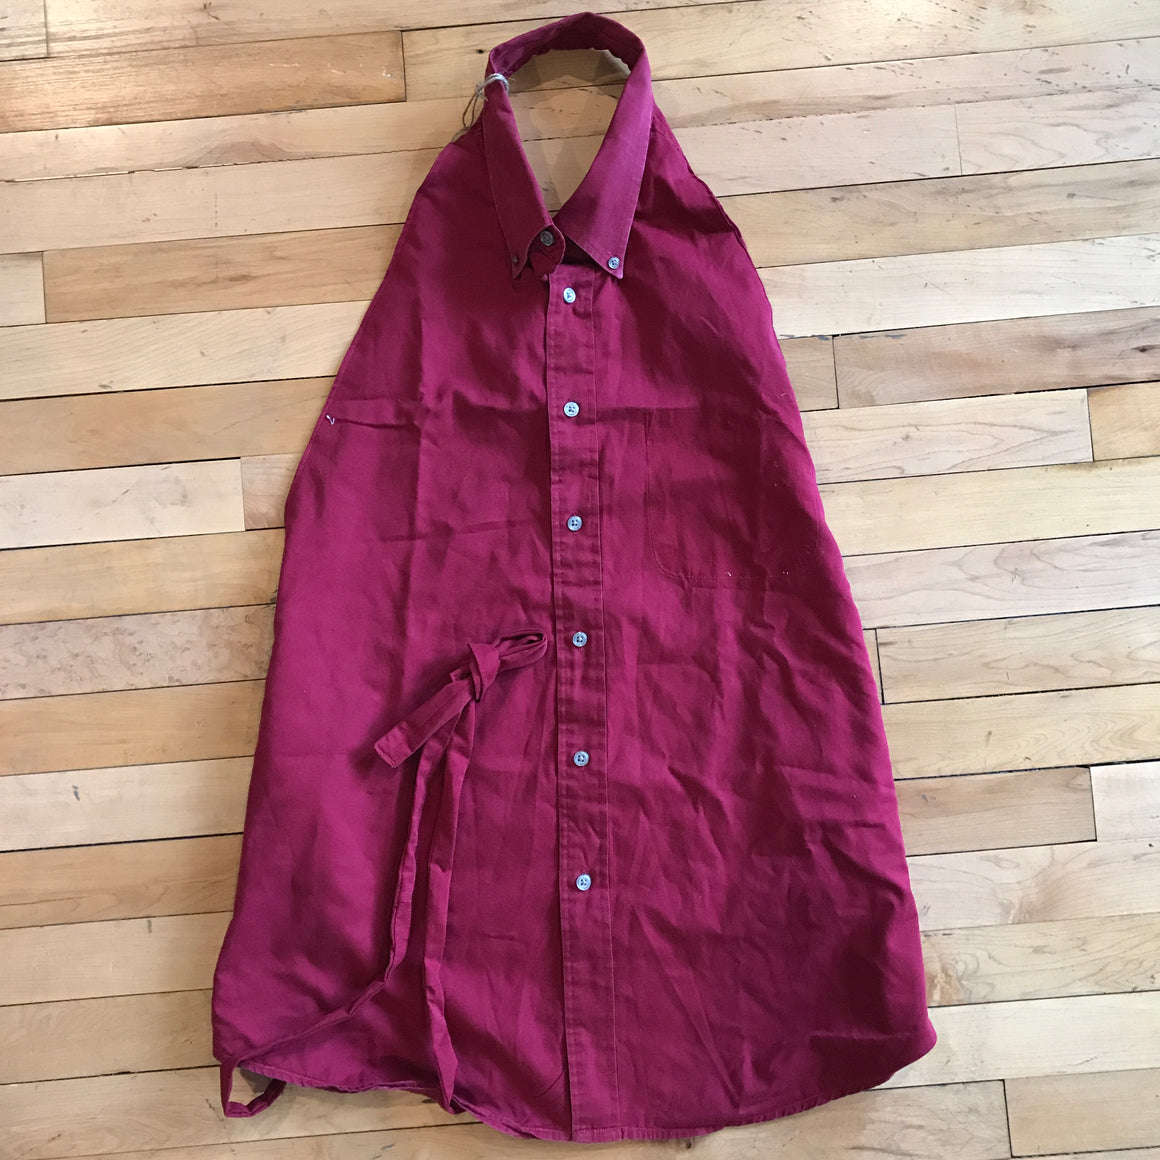 P&R Farms Handmade Dress Shirt Aprons